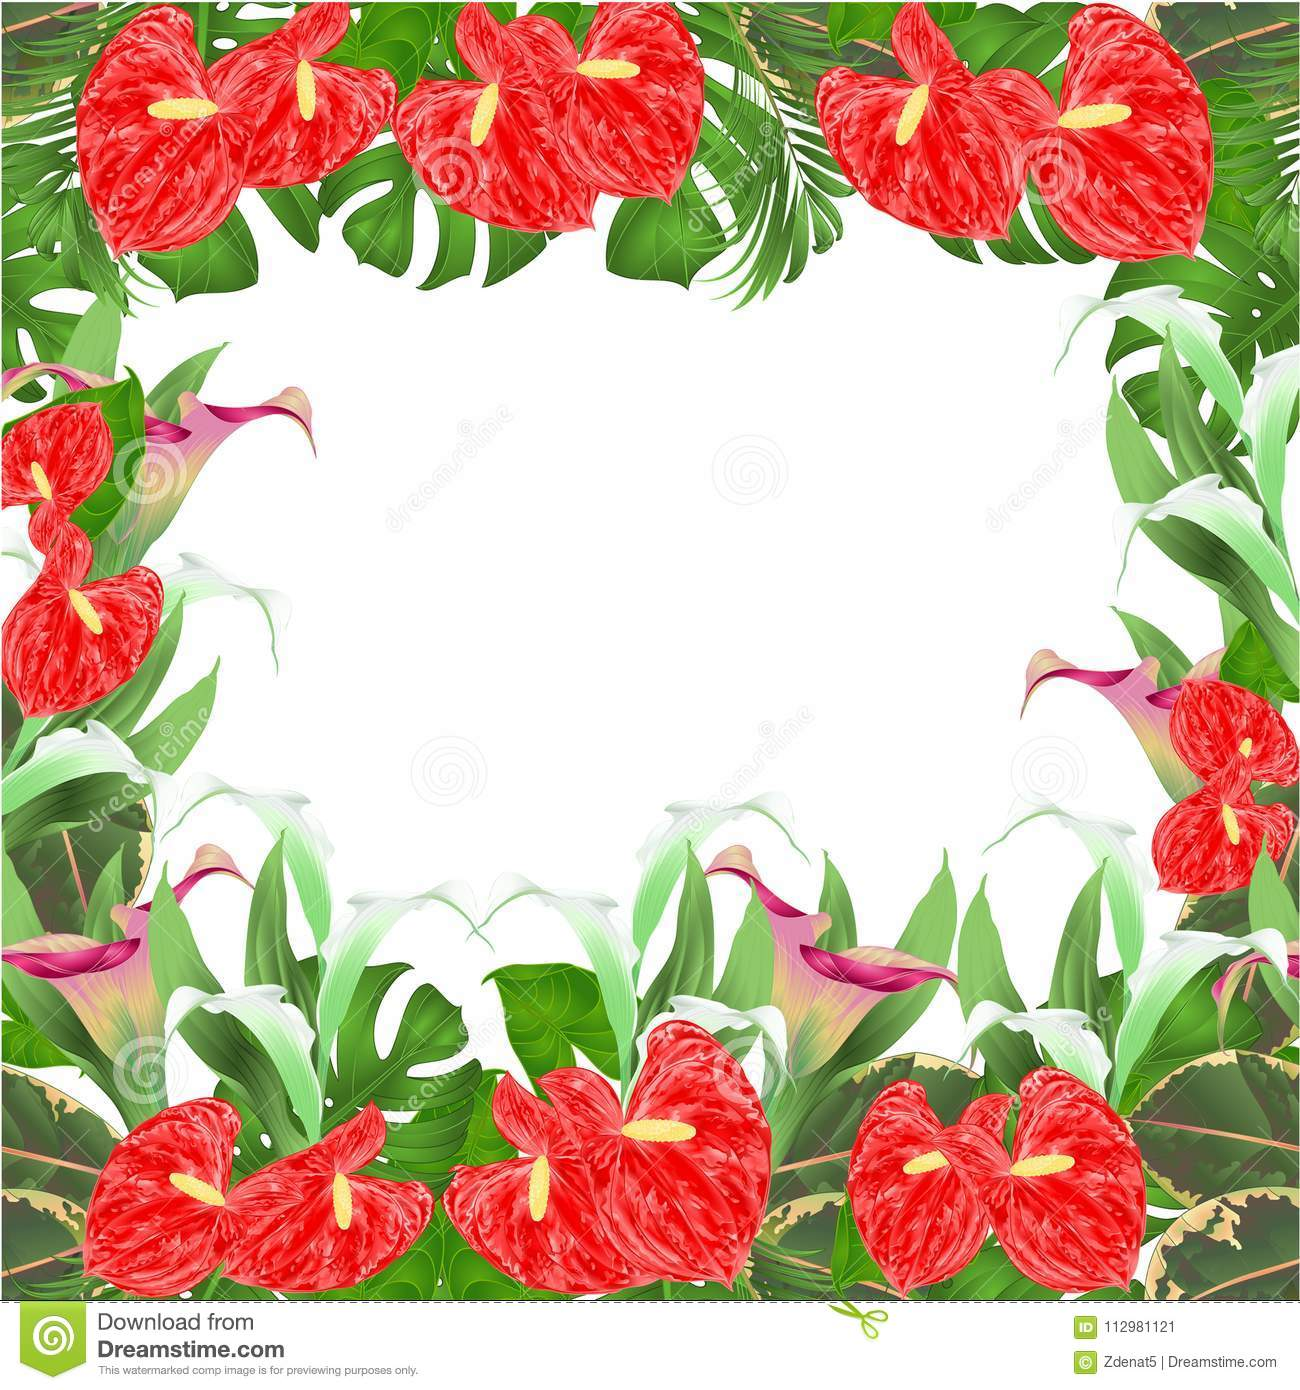 Floral border natural background with blooming lilies Cala and anthurium, palm,philodendron and ficus vector Illustration for use